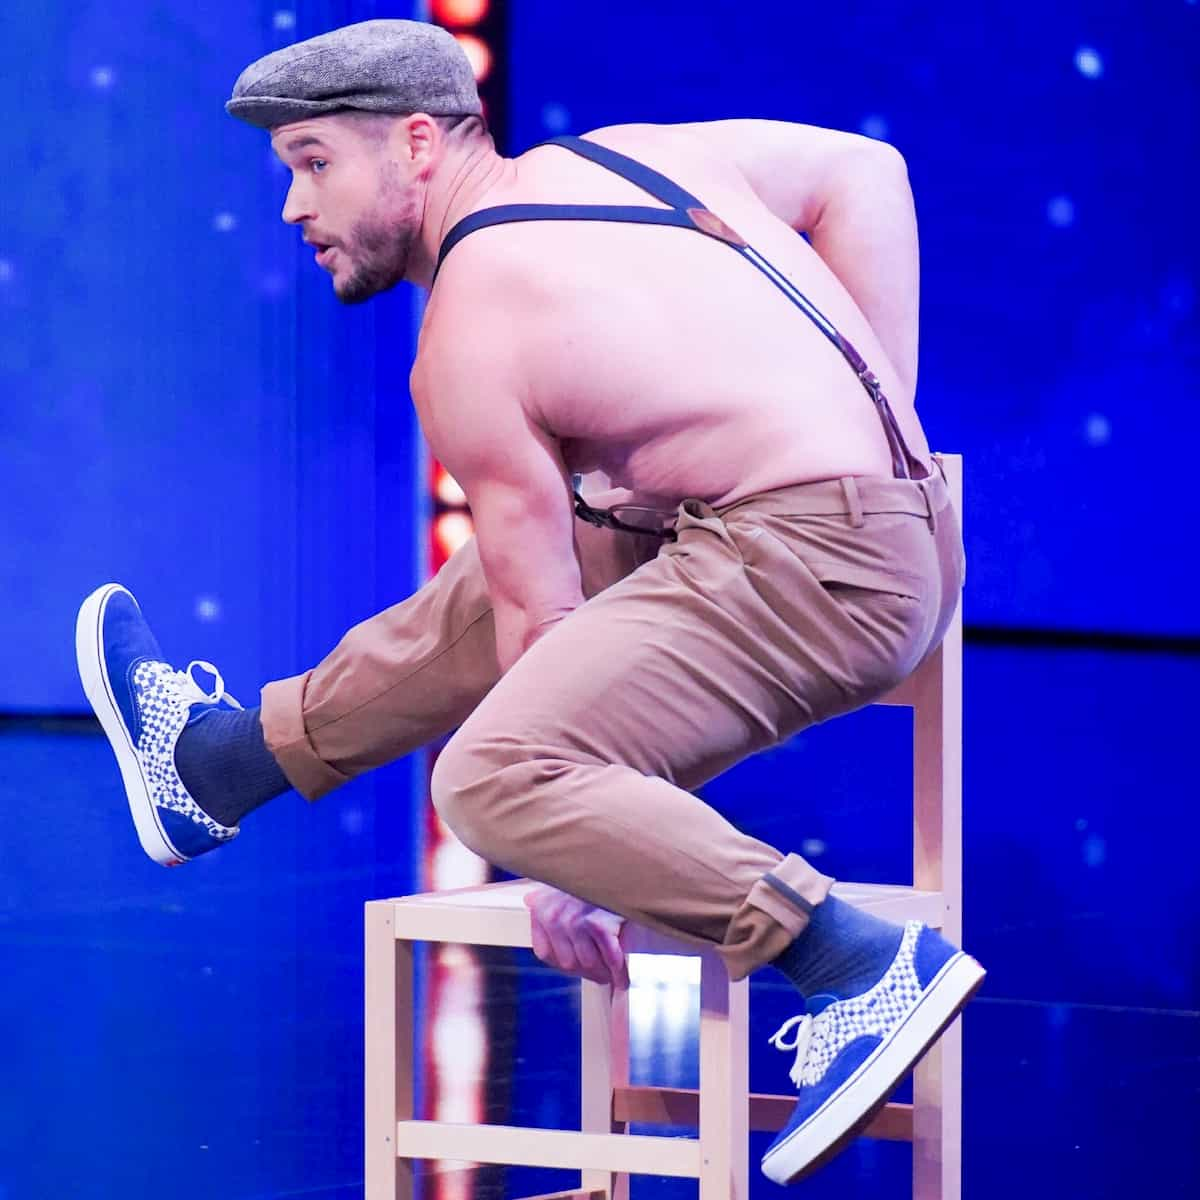 Richard Maguire beim Supertalent am 23.11.2019